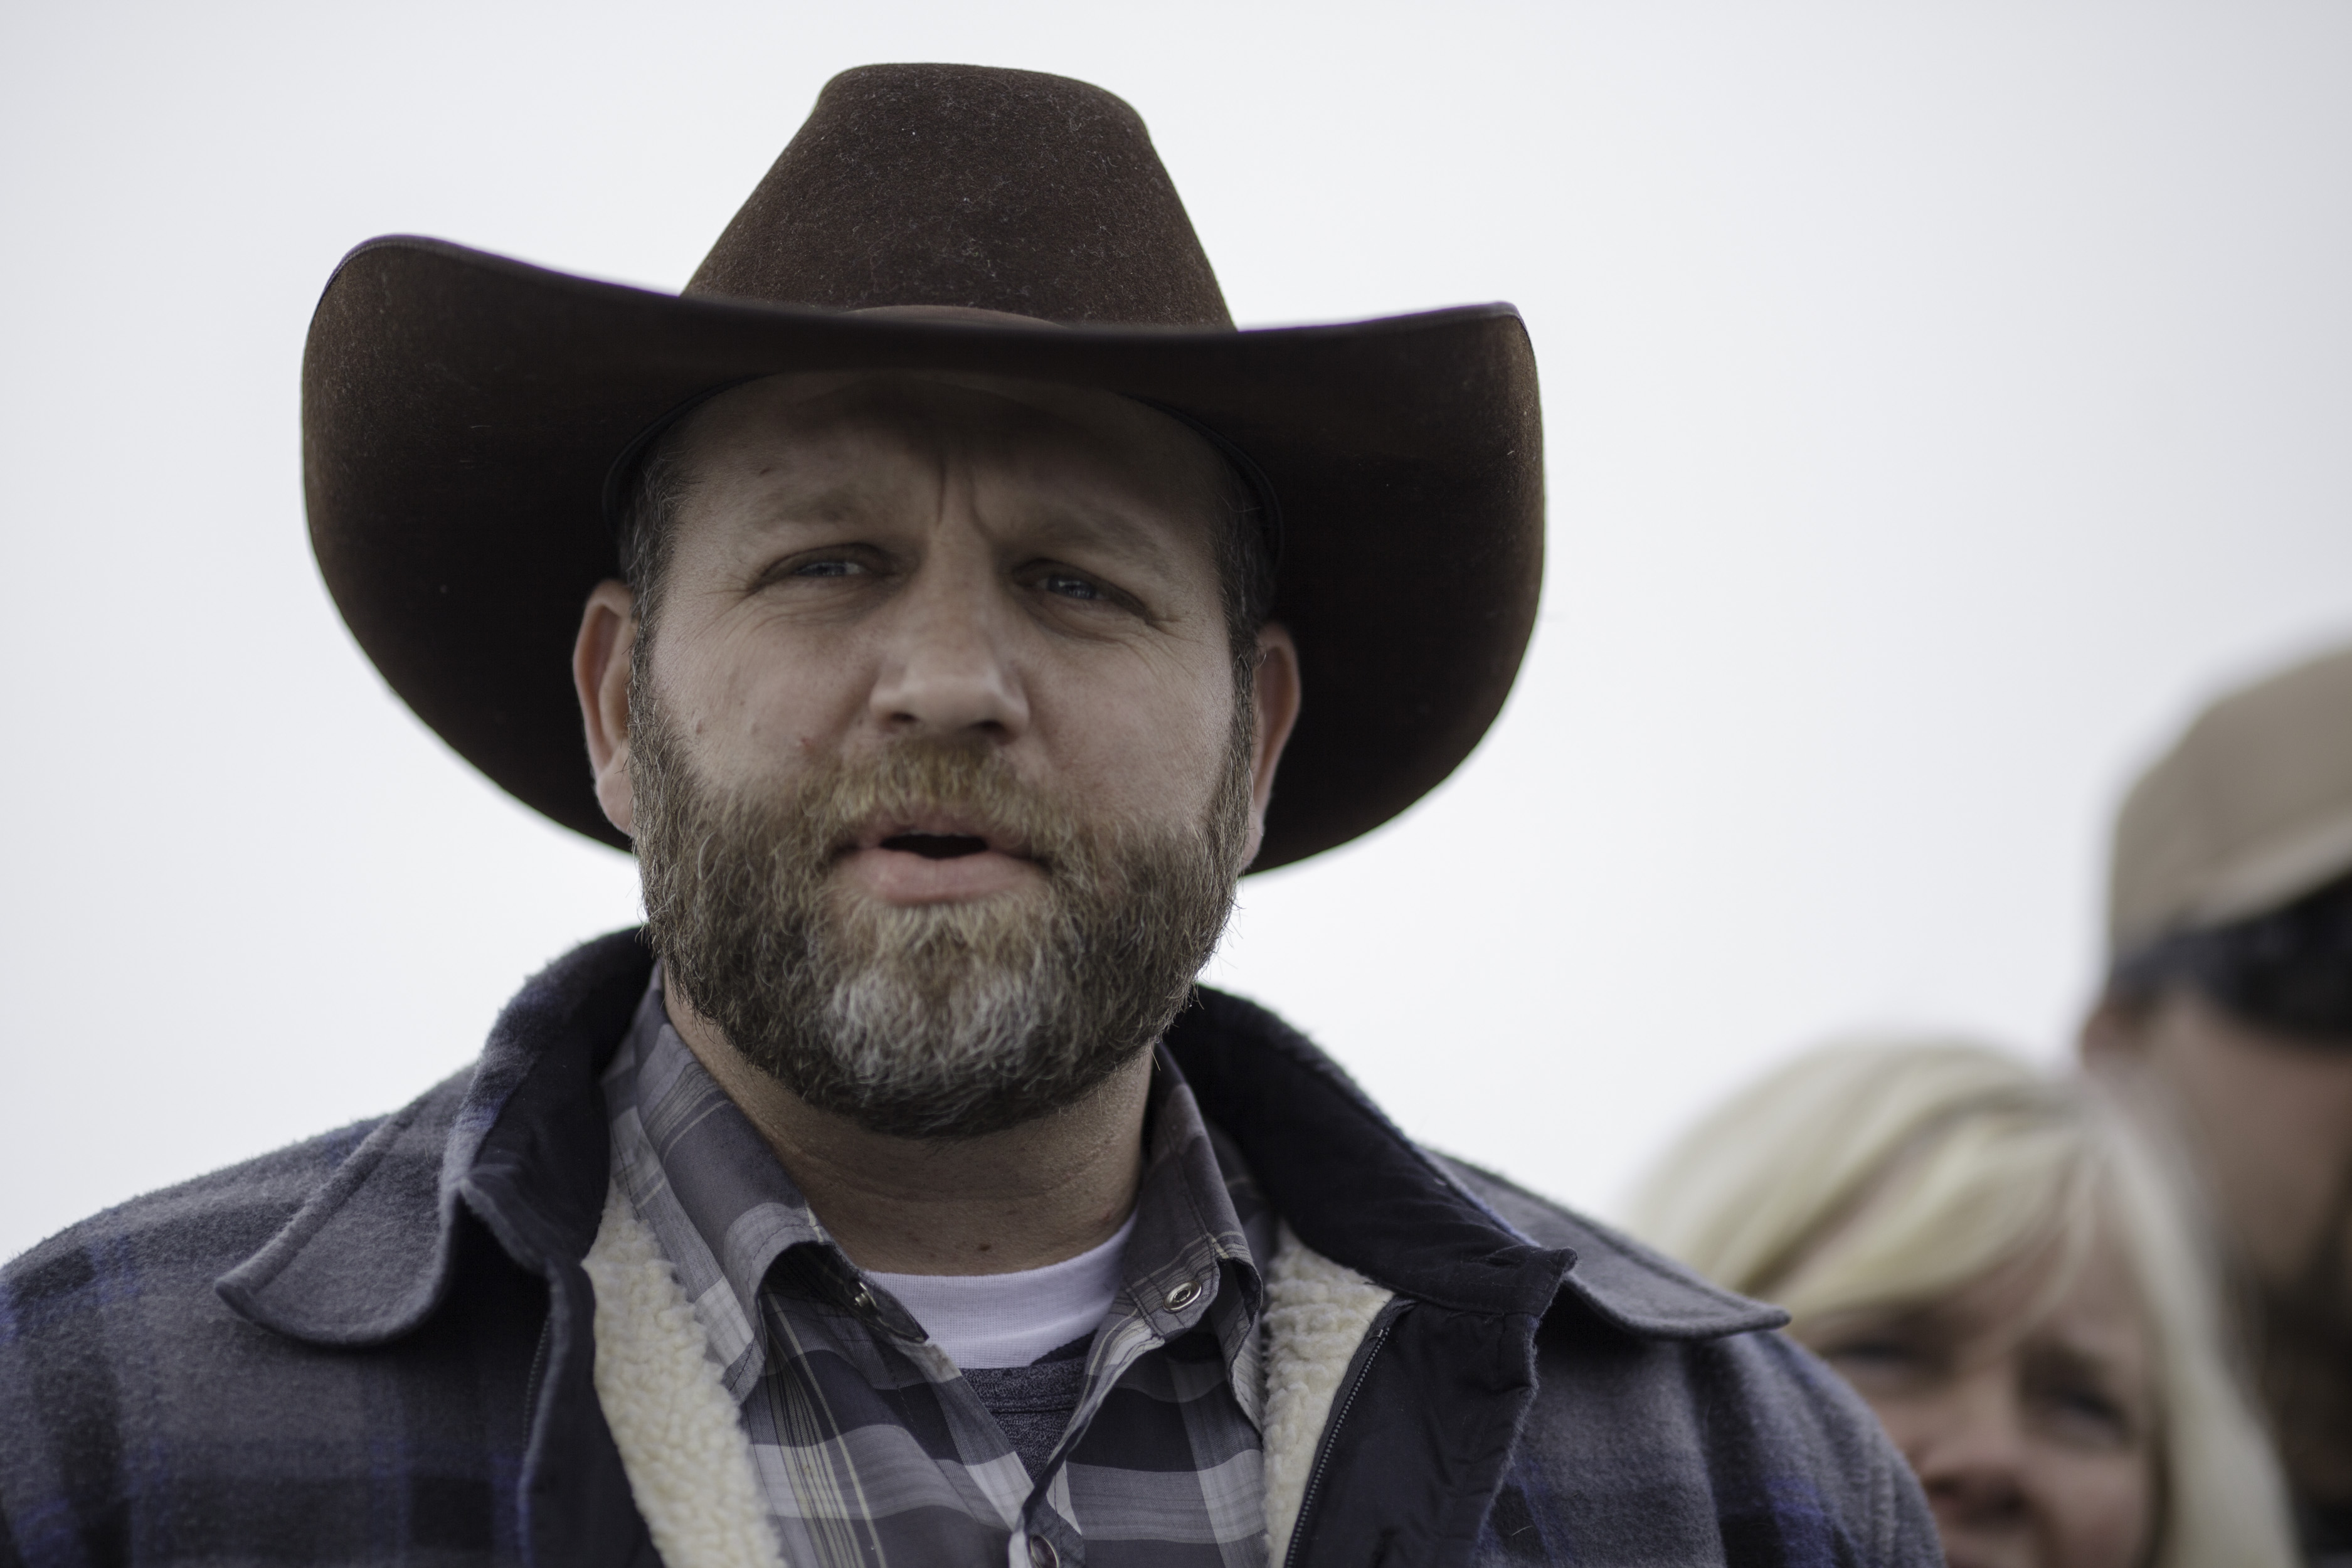 Official: Oregon Militia Leader Reached for His Gun Before Police Killed Him